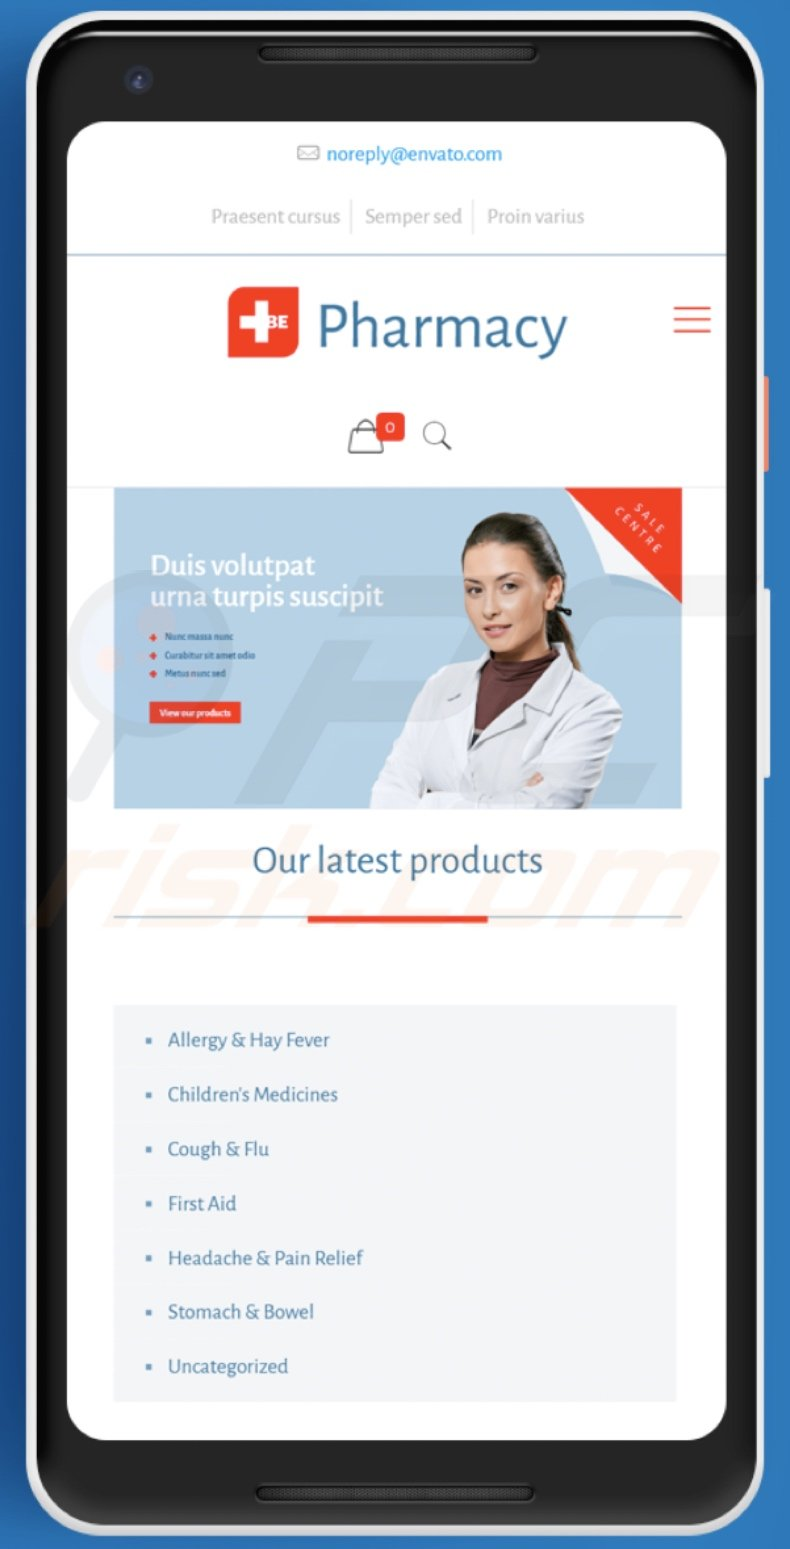 Fake pharmacy website used to proliferate SpyMax malware